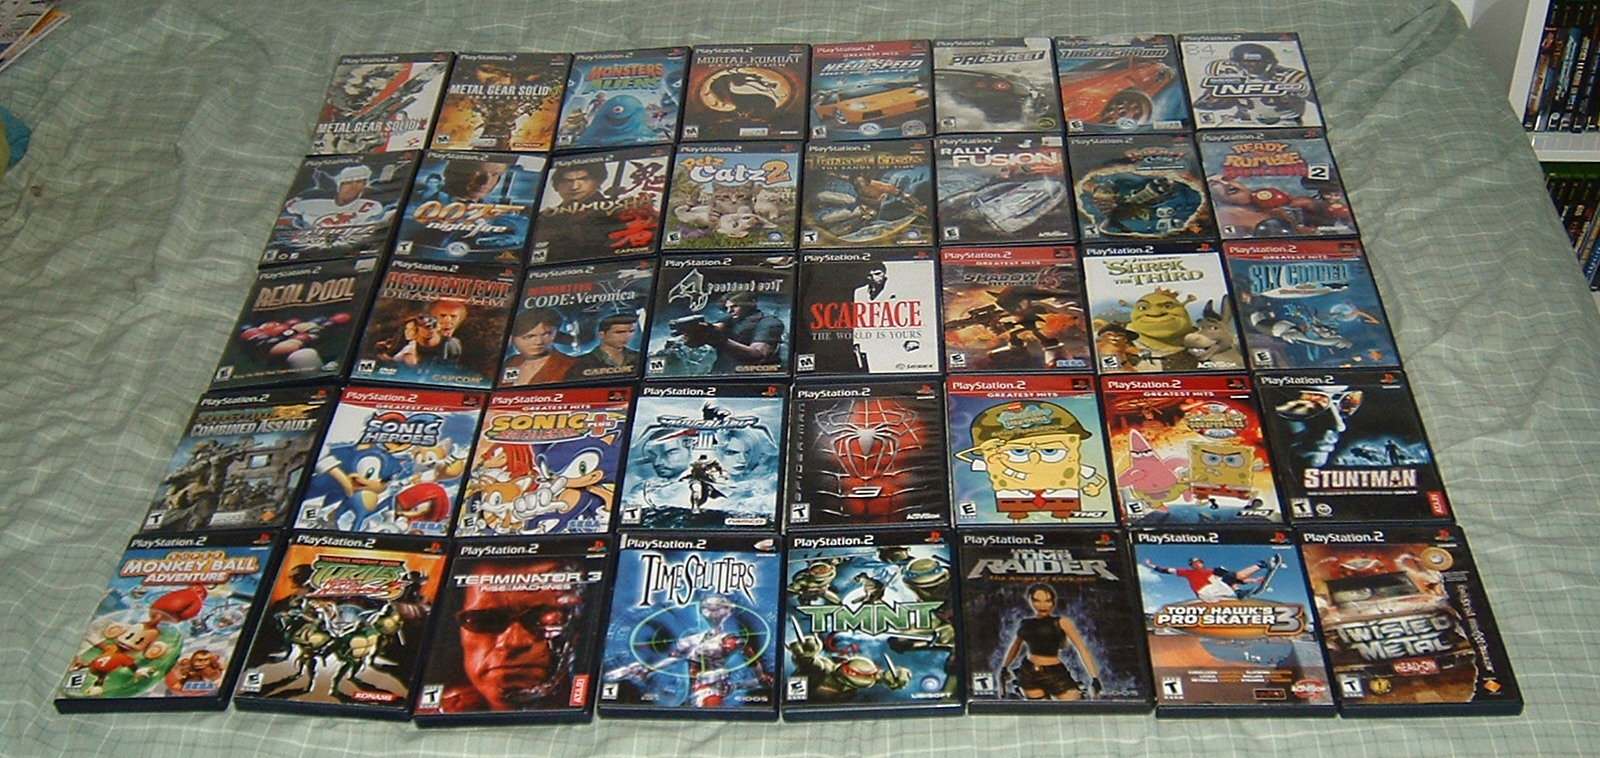 My Ps2 Collection Part 2 By Tinythegiant On Deviantart